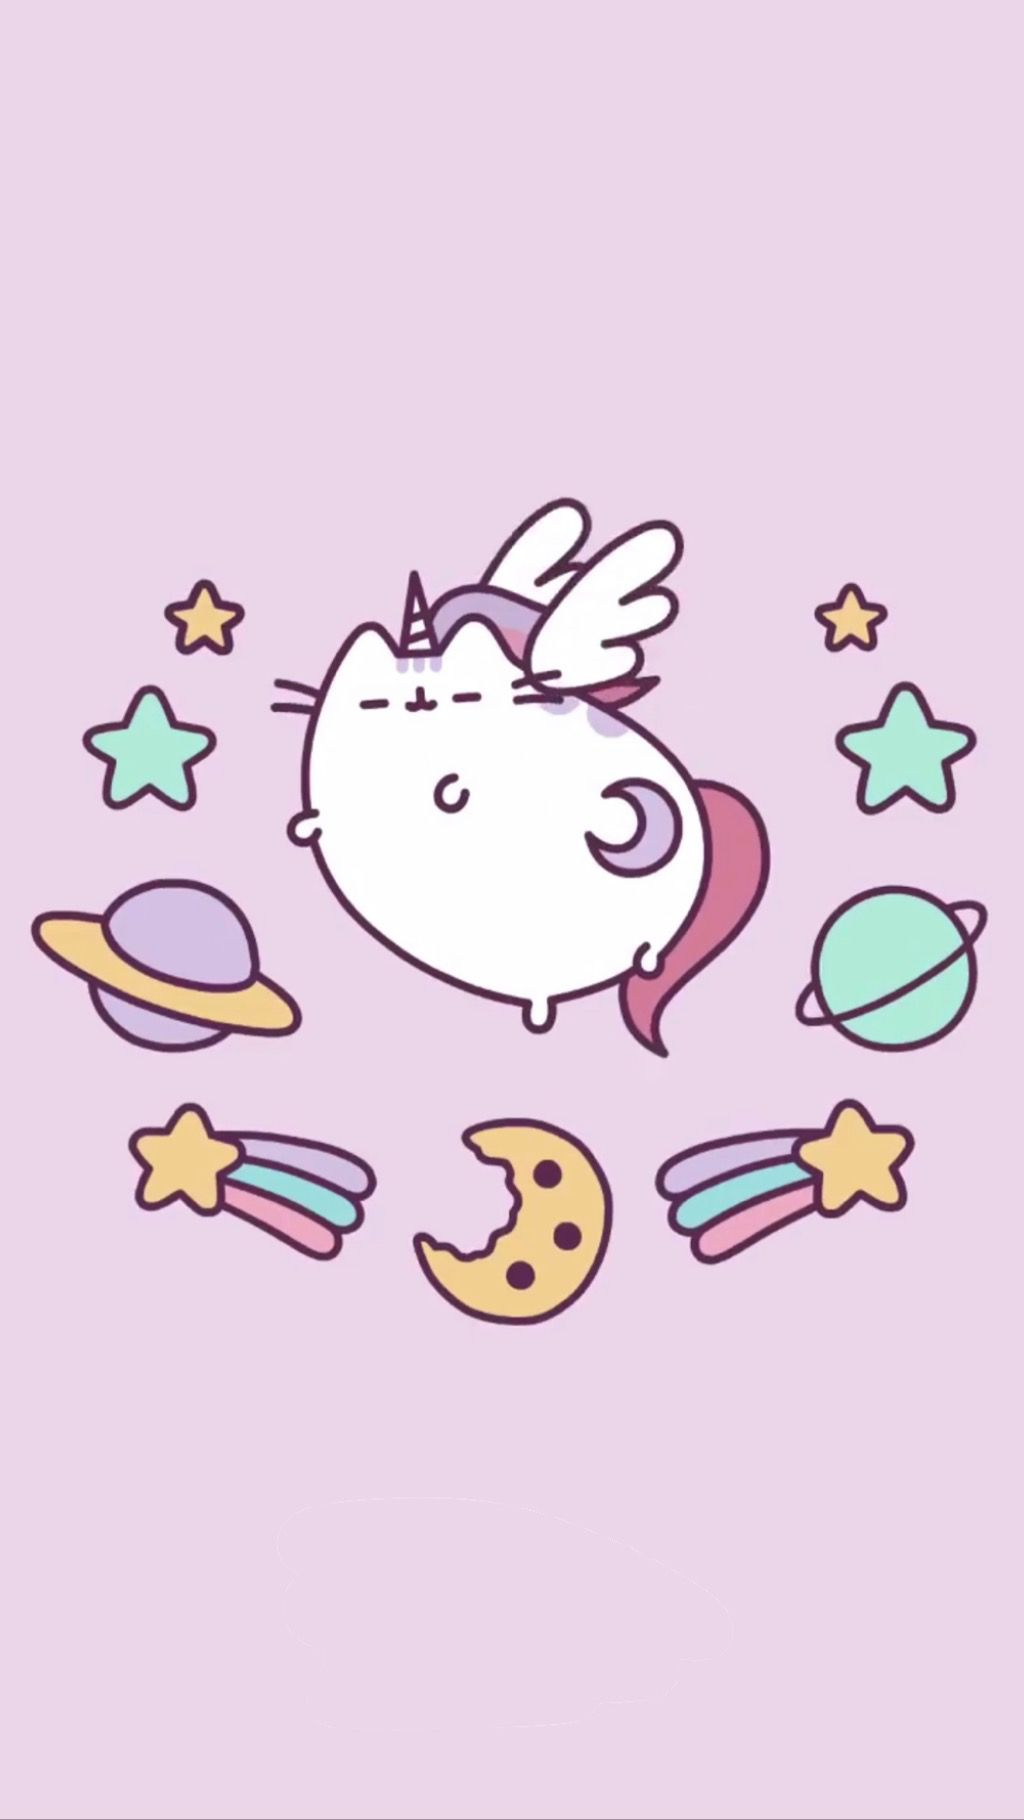 Galaxy Pusheen Wallpaper